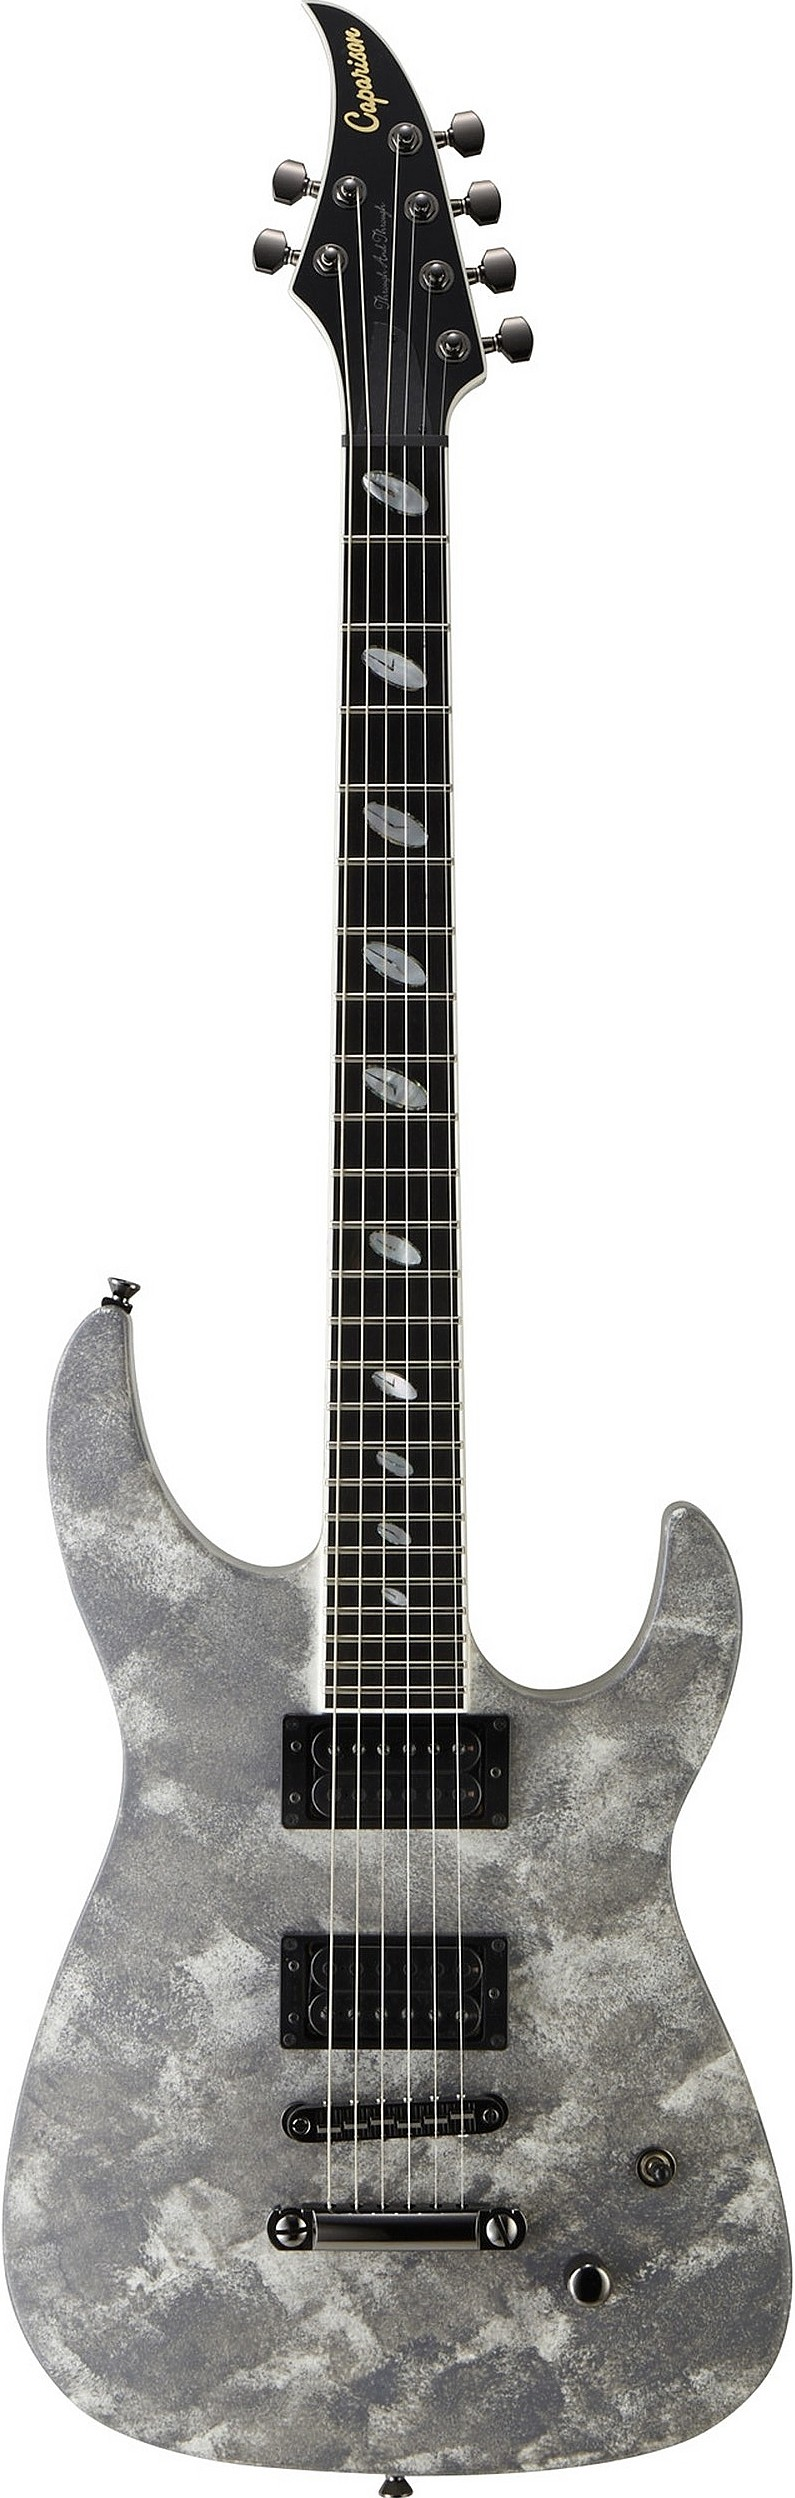 TAT-II FX Limited Edition by Caparison